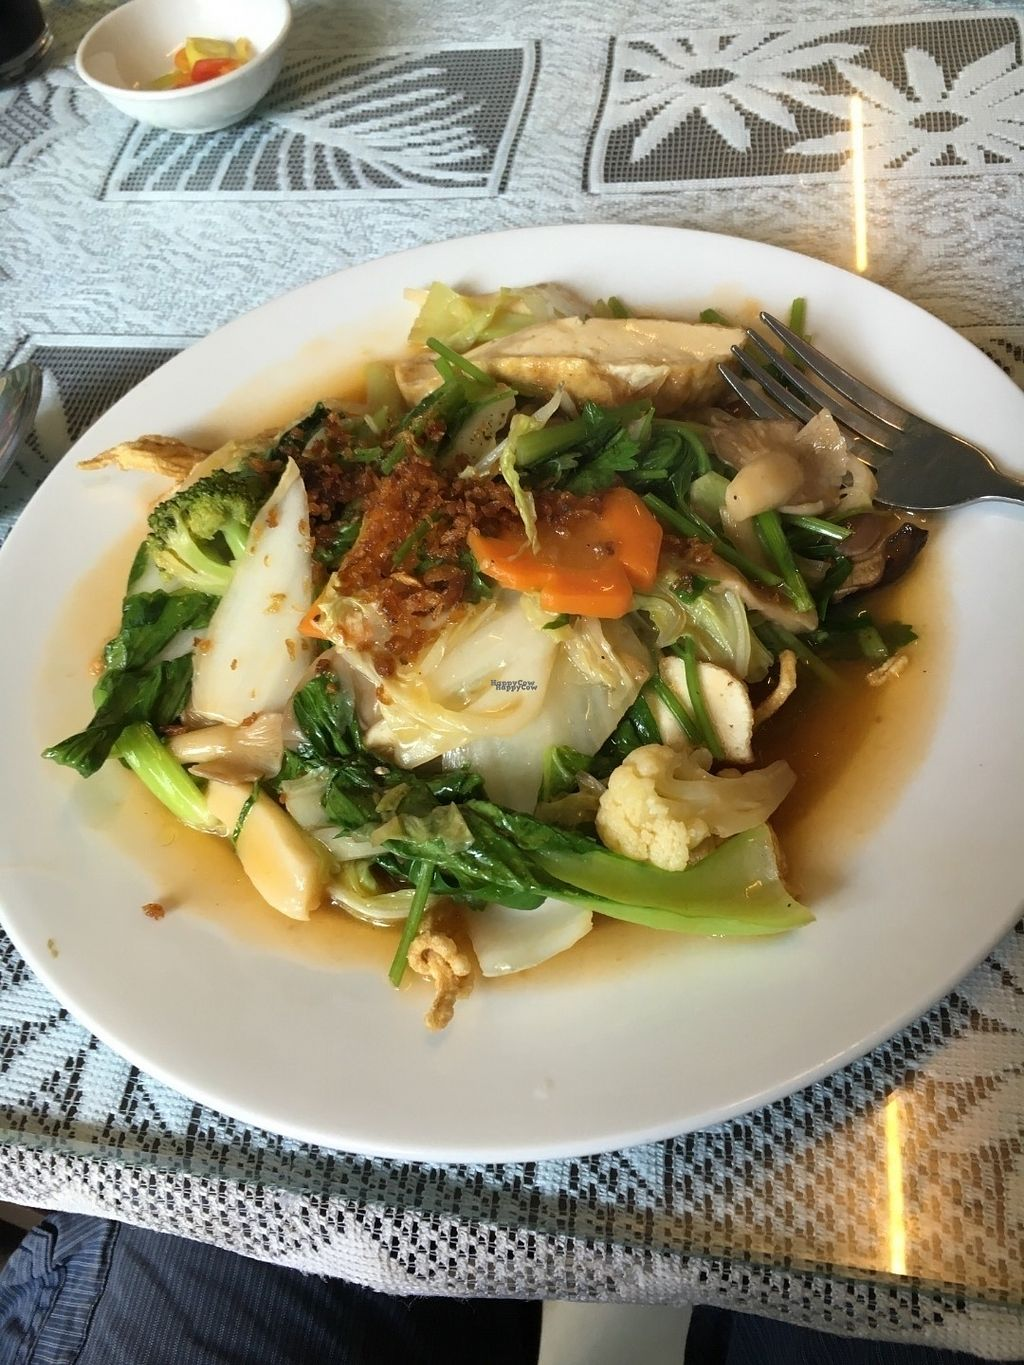 "Photo of Hoa Thien  by <a href=""/members/profile/Tim_nottingham"">Tim_nottingham</a> <br/>Wok tossed vegetables on crispy noodles.  <br/> September 2, 2016  - <a href='/contact/abuse/image/61491/172997'>Report</a>"